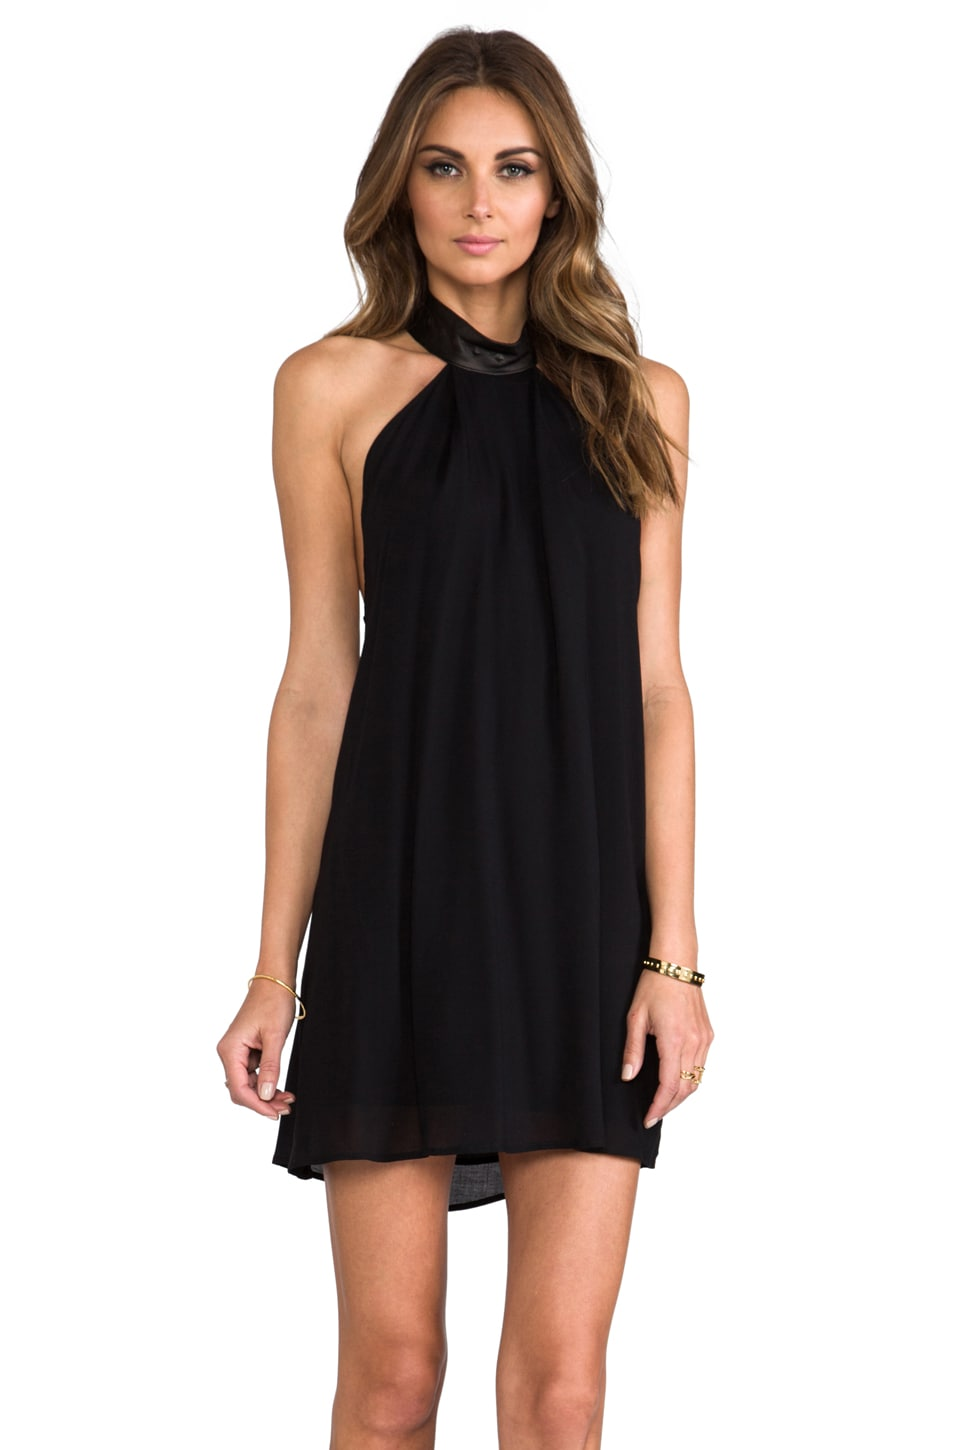 Boulee Cassie Mini Dress in Black